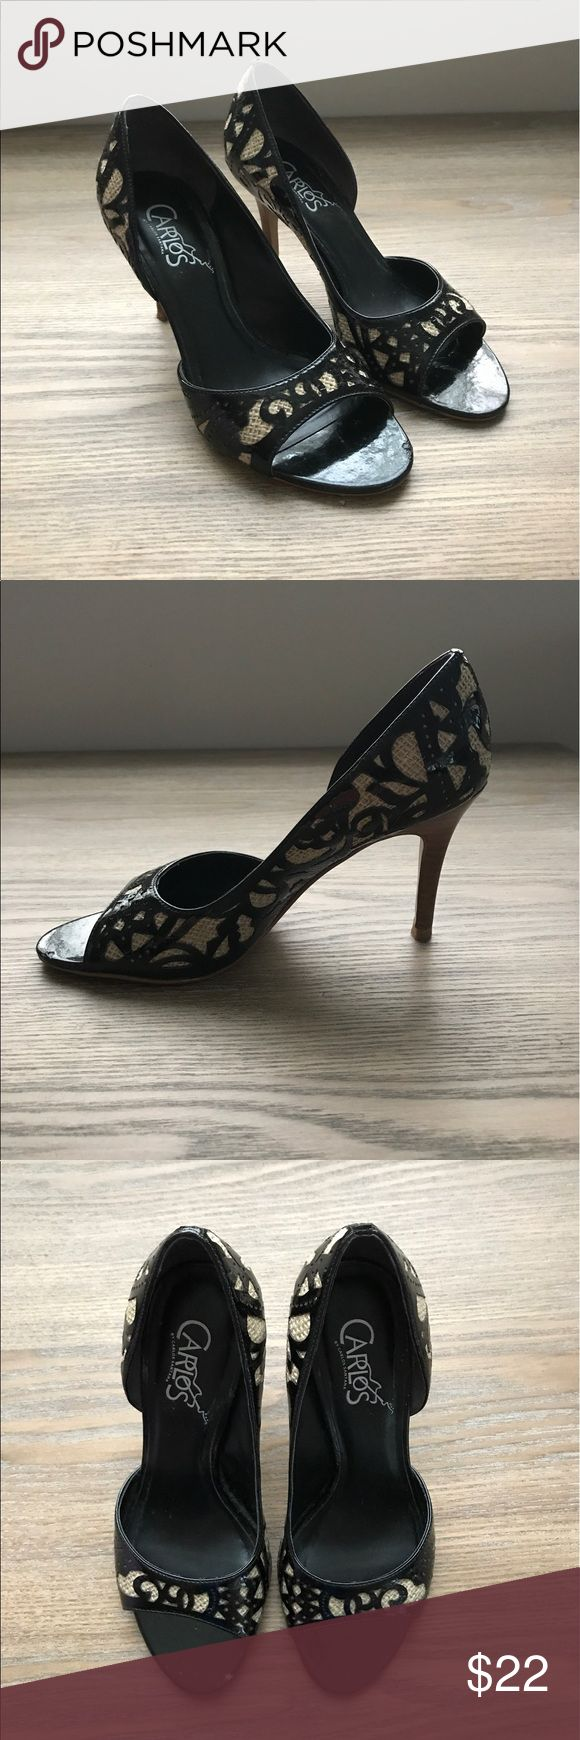 """Carlos Santana Envy Heels in size 6.5 Black patent leather and burlap with cutout detail. Peep toe heels in size 6.5. Wood grain 3"""" heel. Worn only a few times. Small scuff by toe on one shoe. Carlos Santana Shoes Heels"""